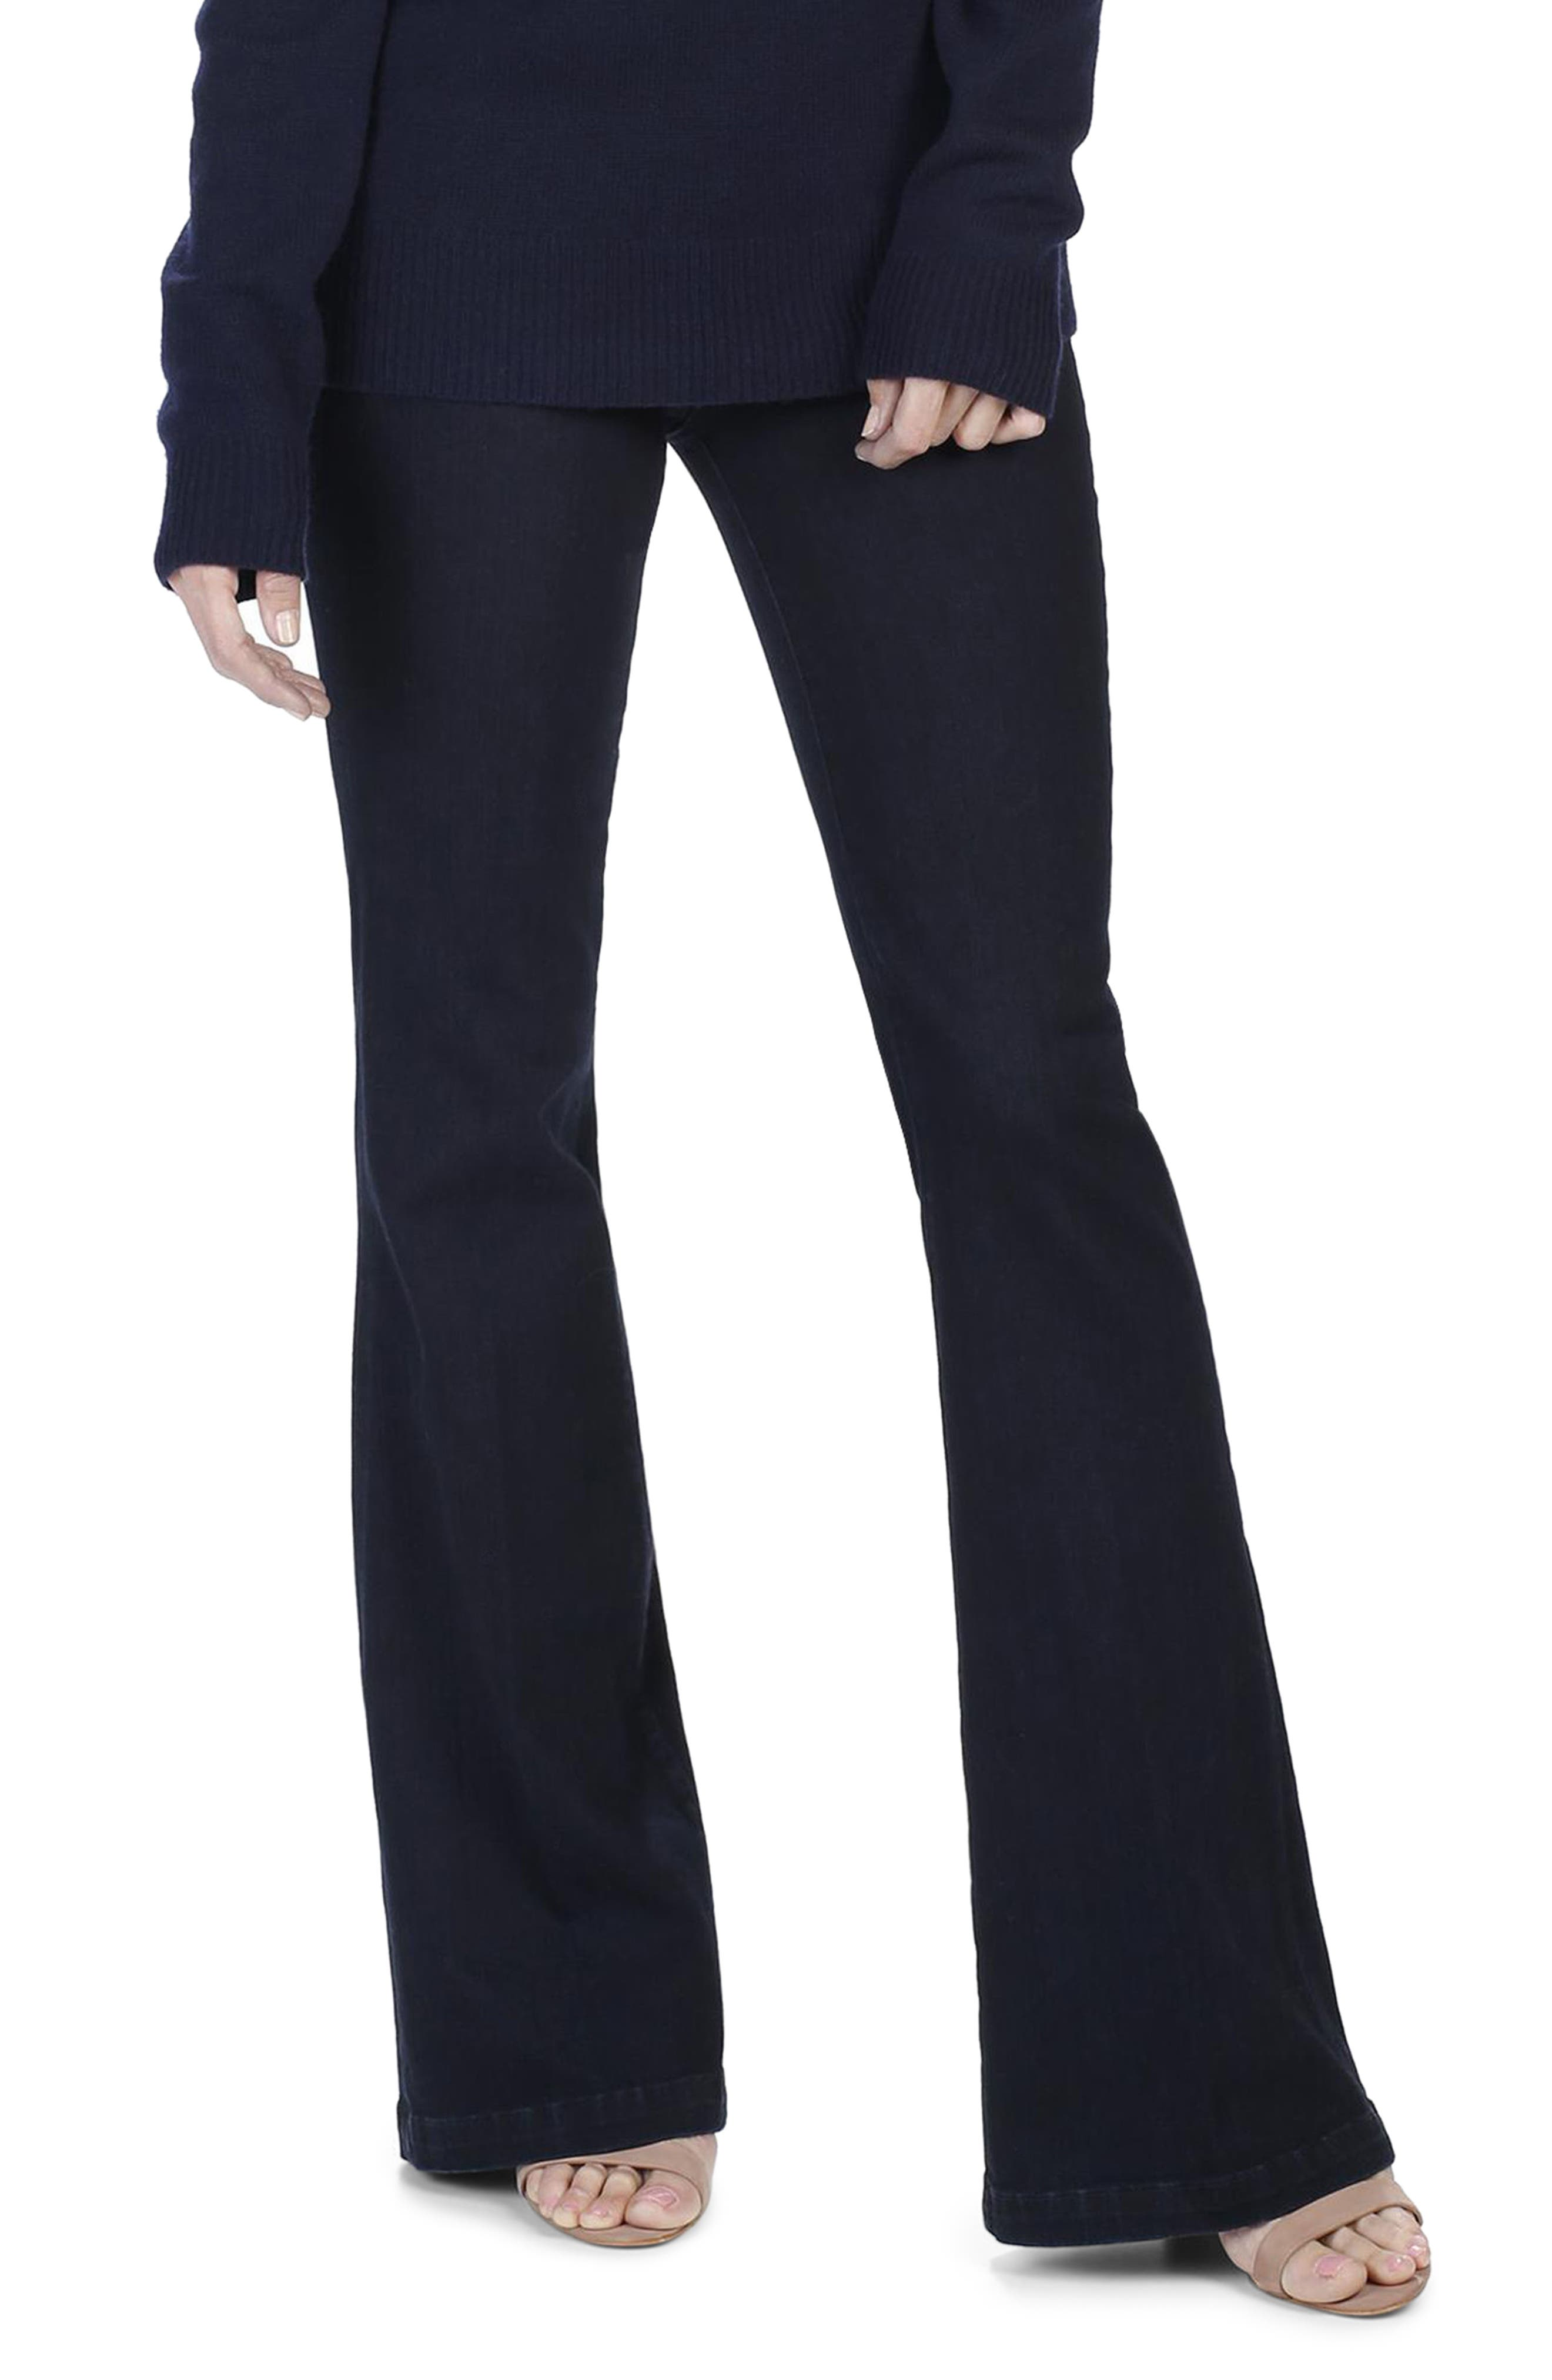 Legacy - Genevieve High Waist Flare Jeans,                             Main thumbnail 1, color,                             400